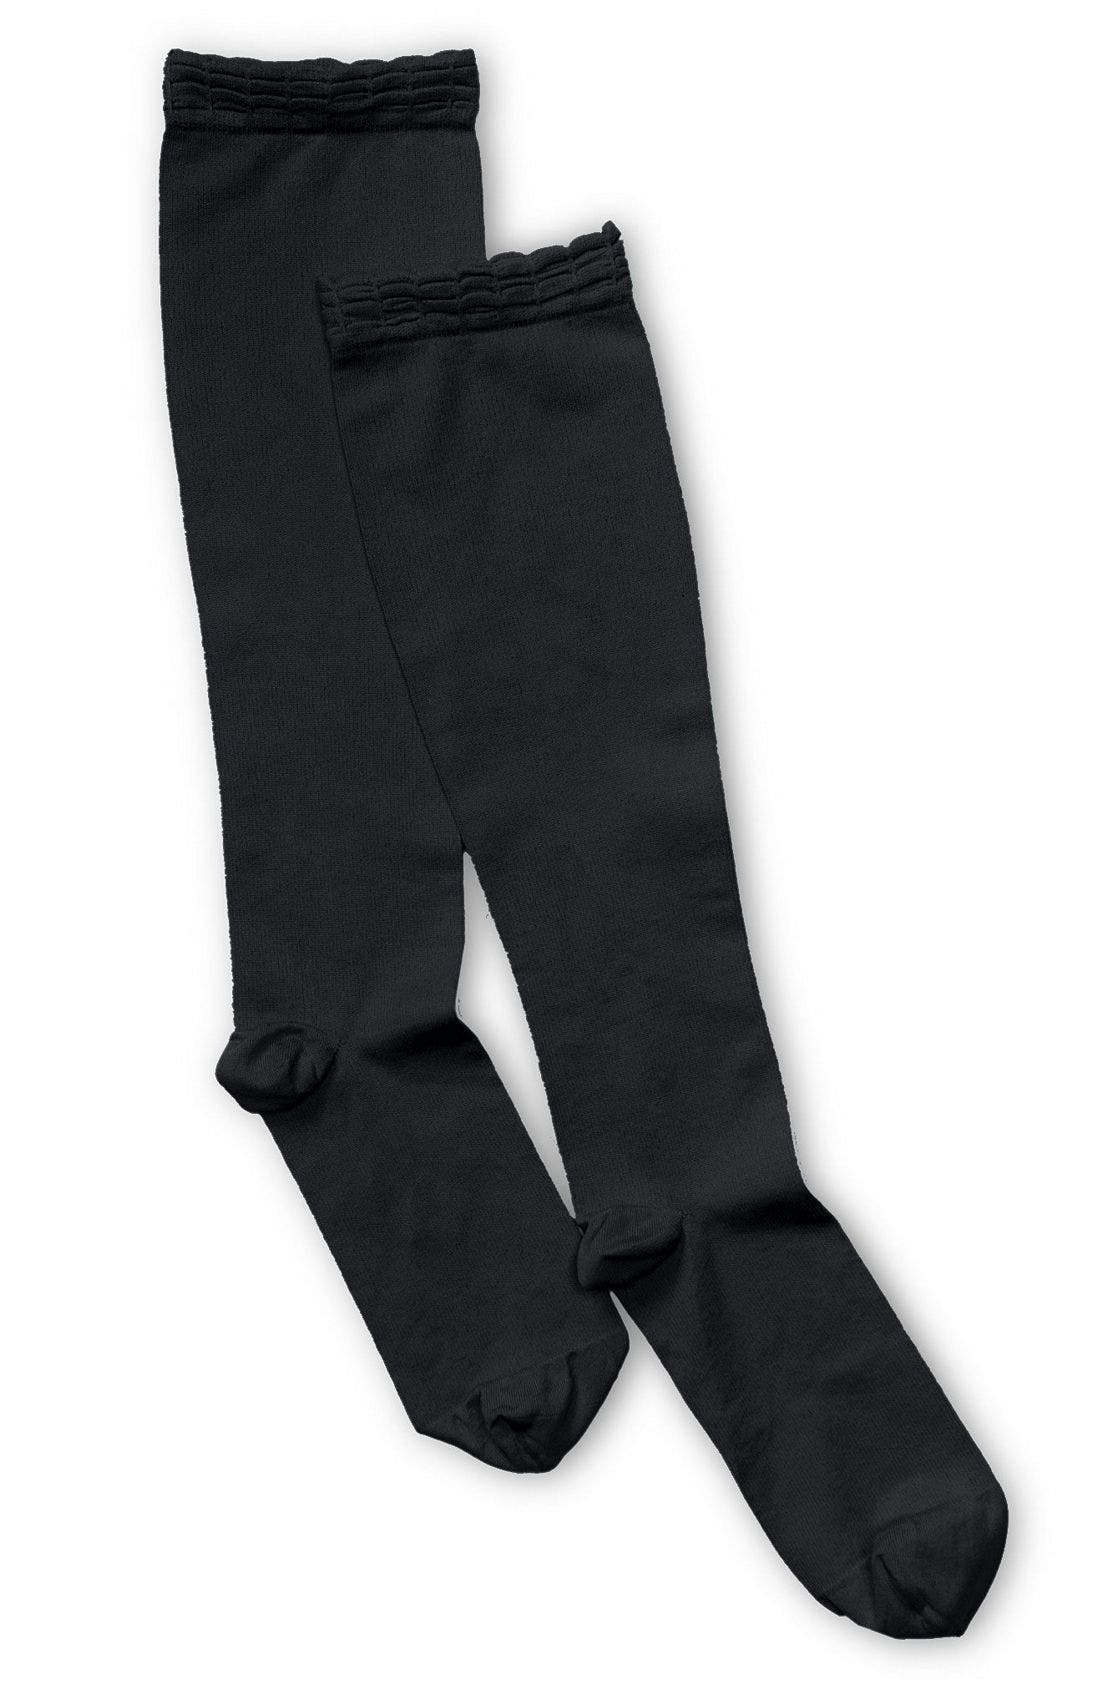 Main Image - Nordstrom Compression Trouser Socks